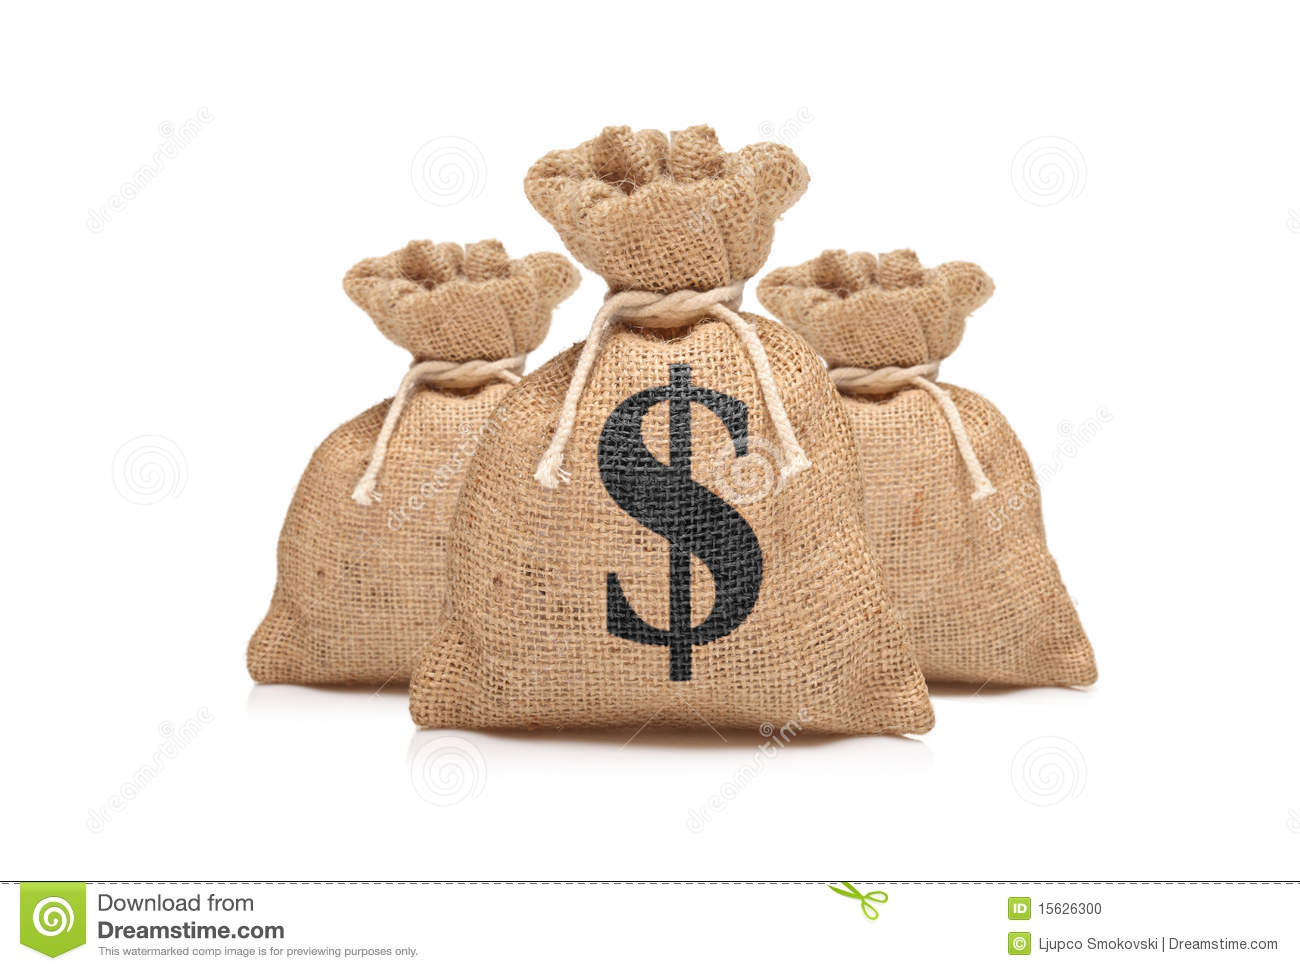 View Three Money Bags Us Dollar Sign additionally Running Man White Hi likewise Parable Of The Talents Settling Md in addition Dc R Kei in addition Counting Money Clipart. on money bag clip art